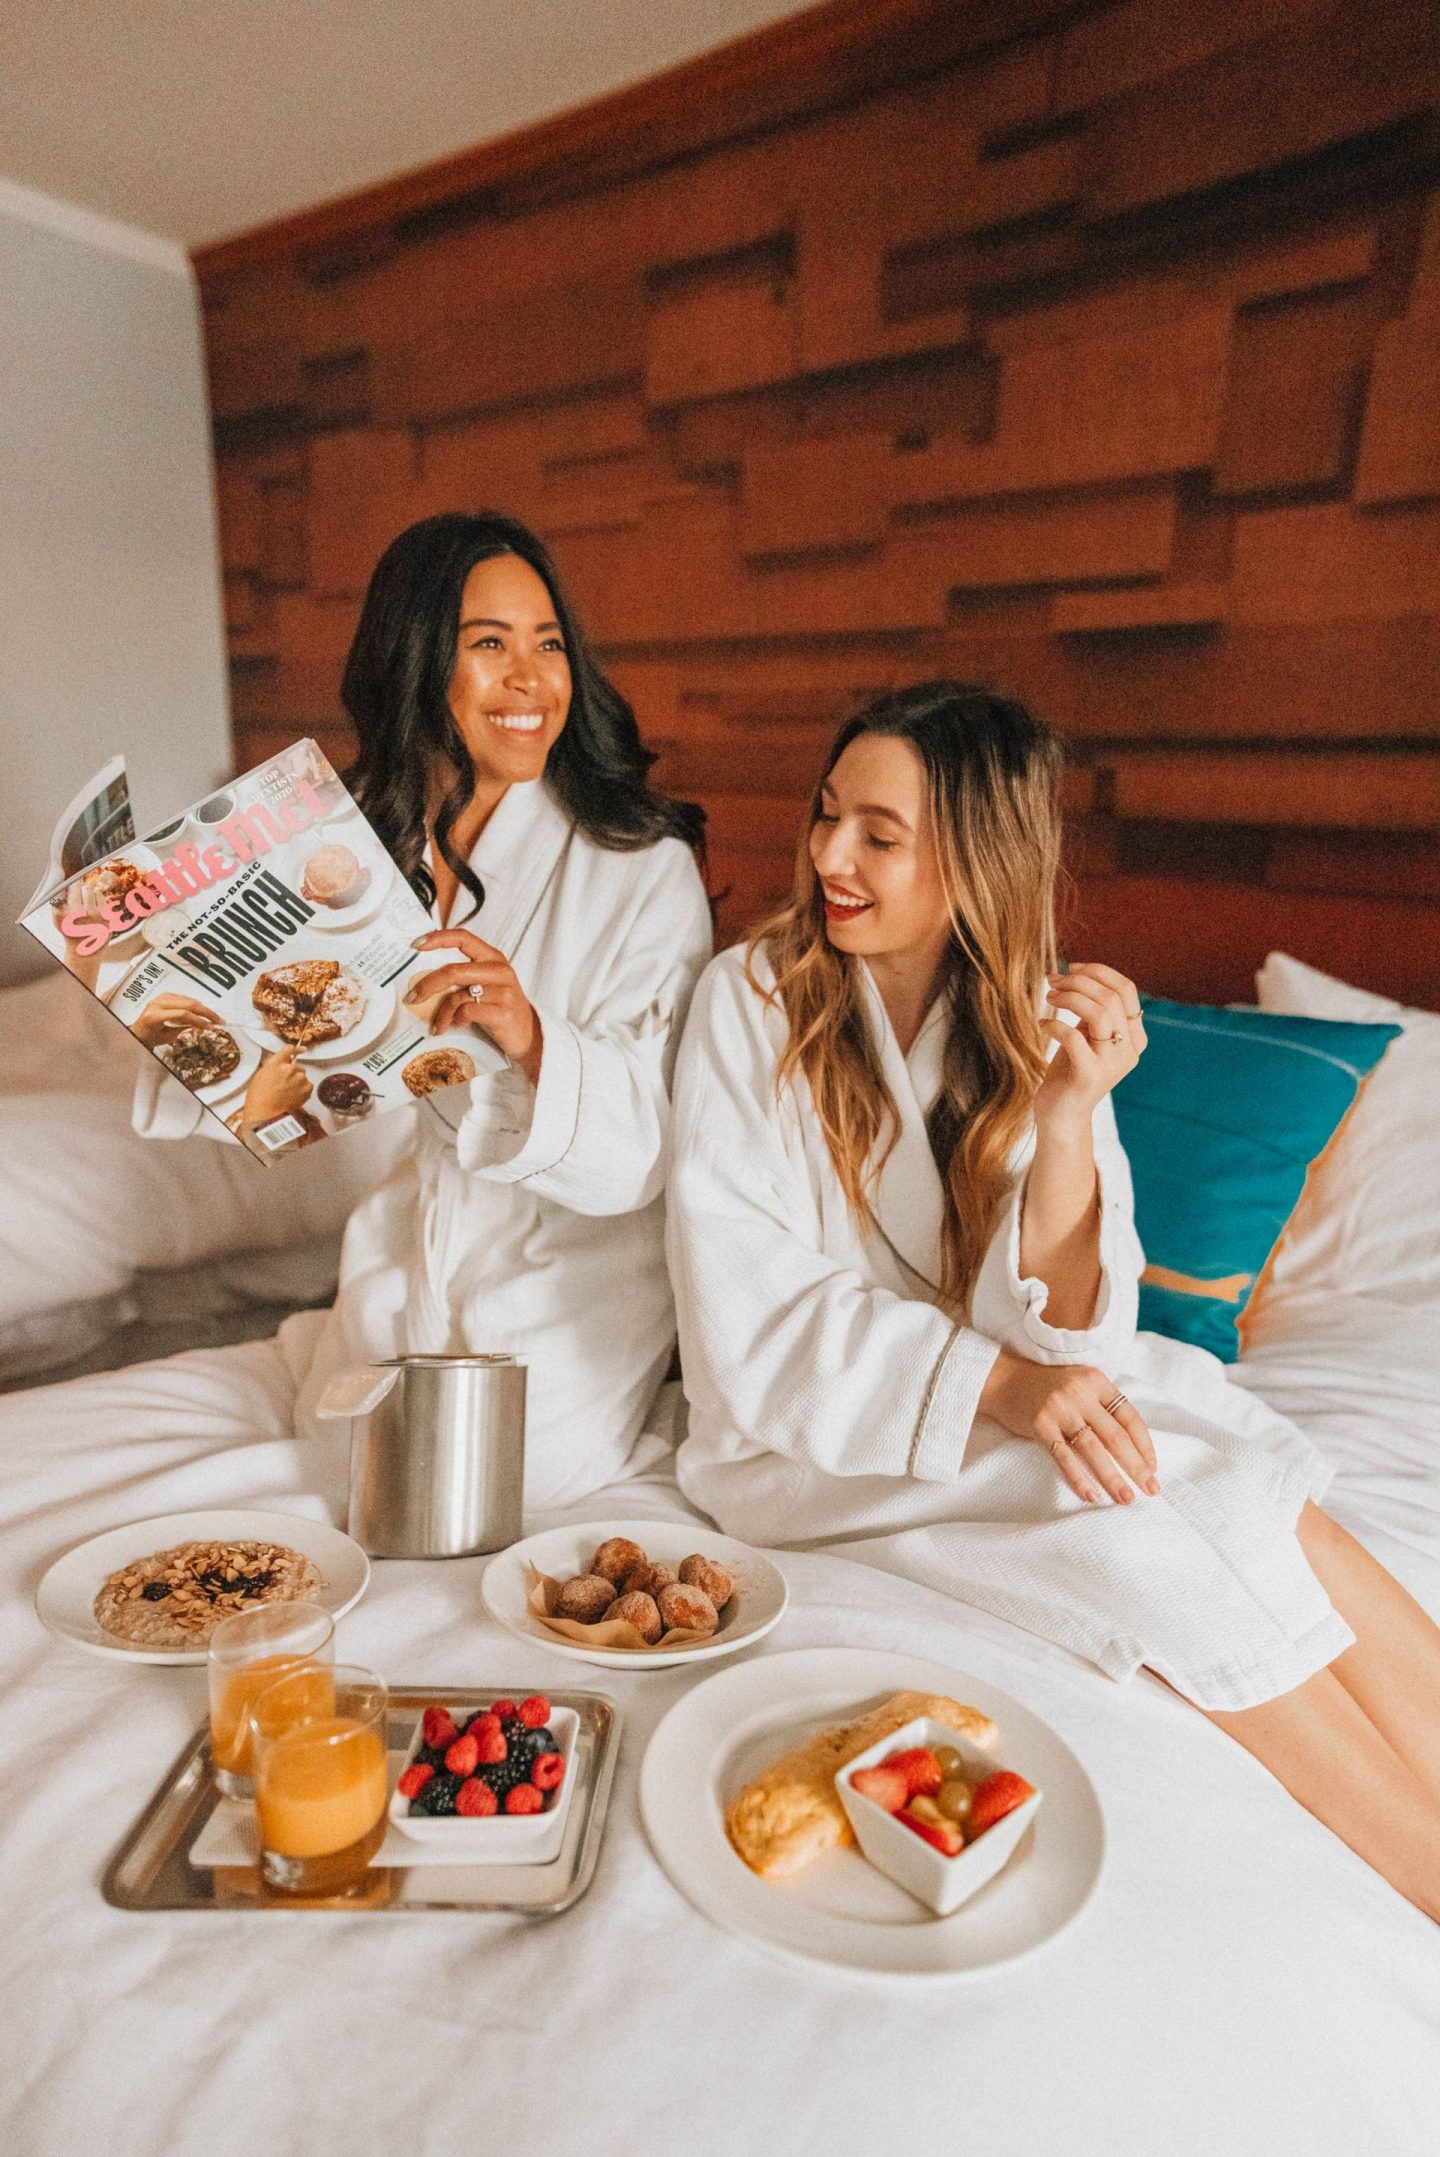 Brunch in bed - Emma's Edition - hotel photo ideas - hotel photo shoot - W Seattle